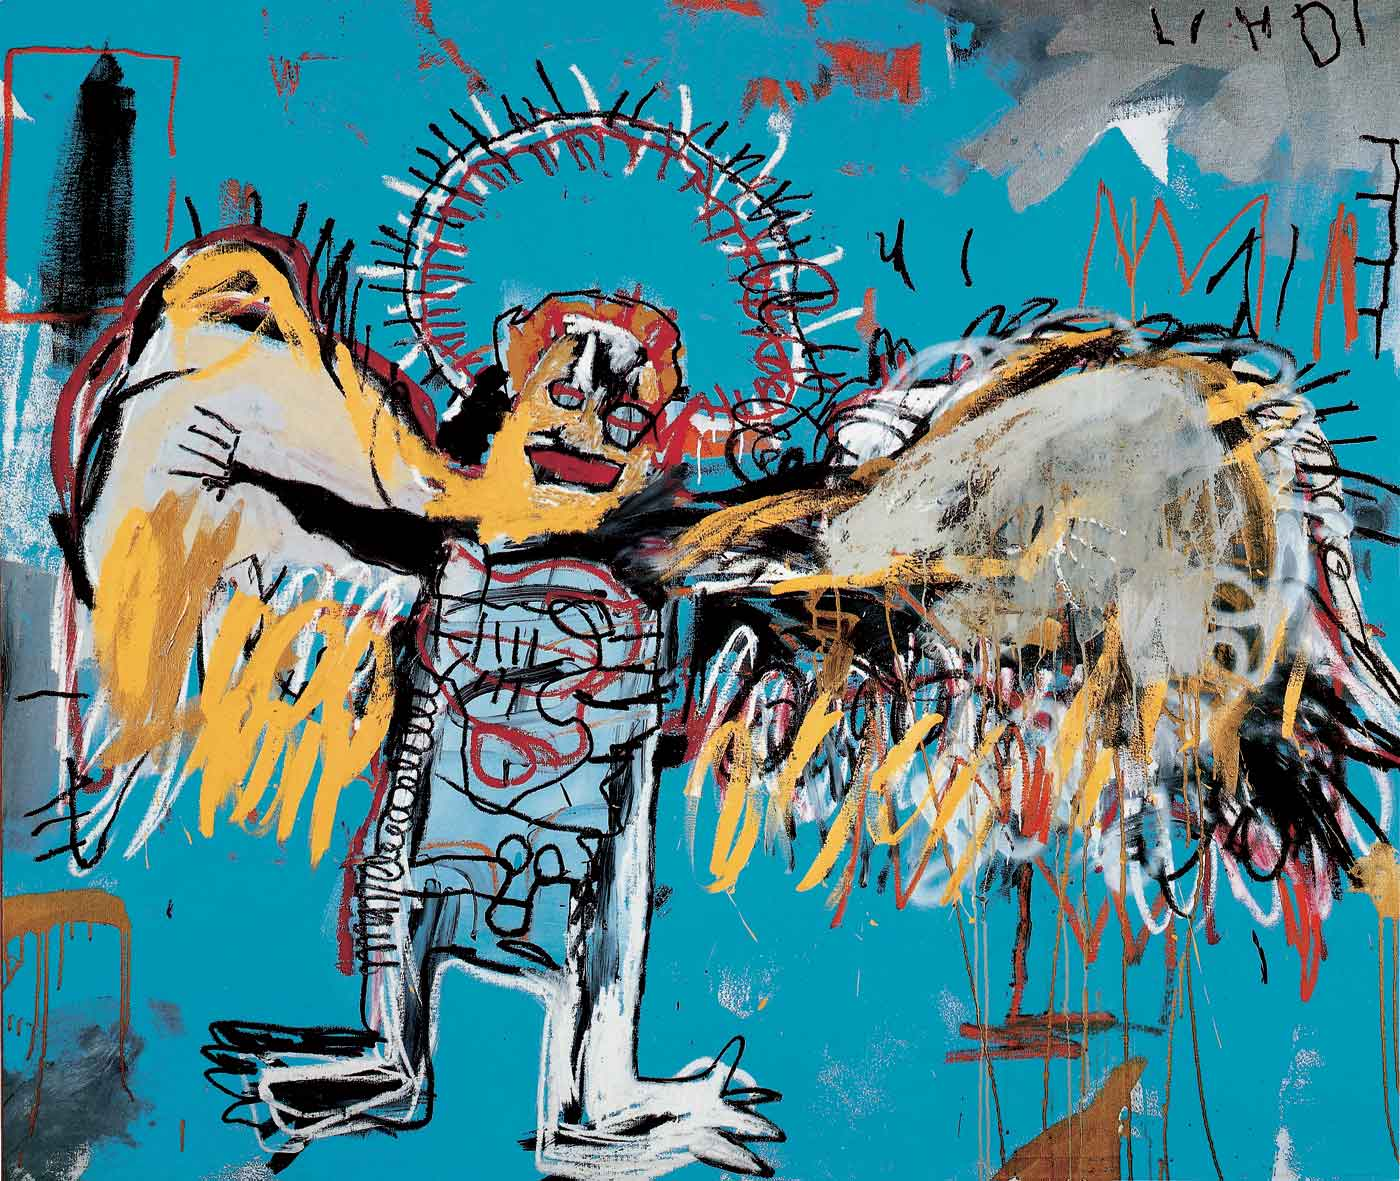 Jean-Michel Basquiat - Untitled (Fallen Angel), 1981